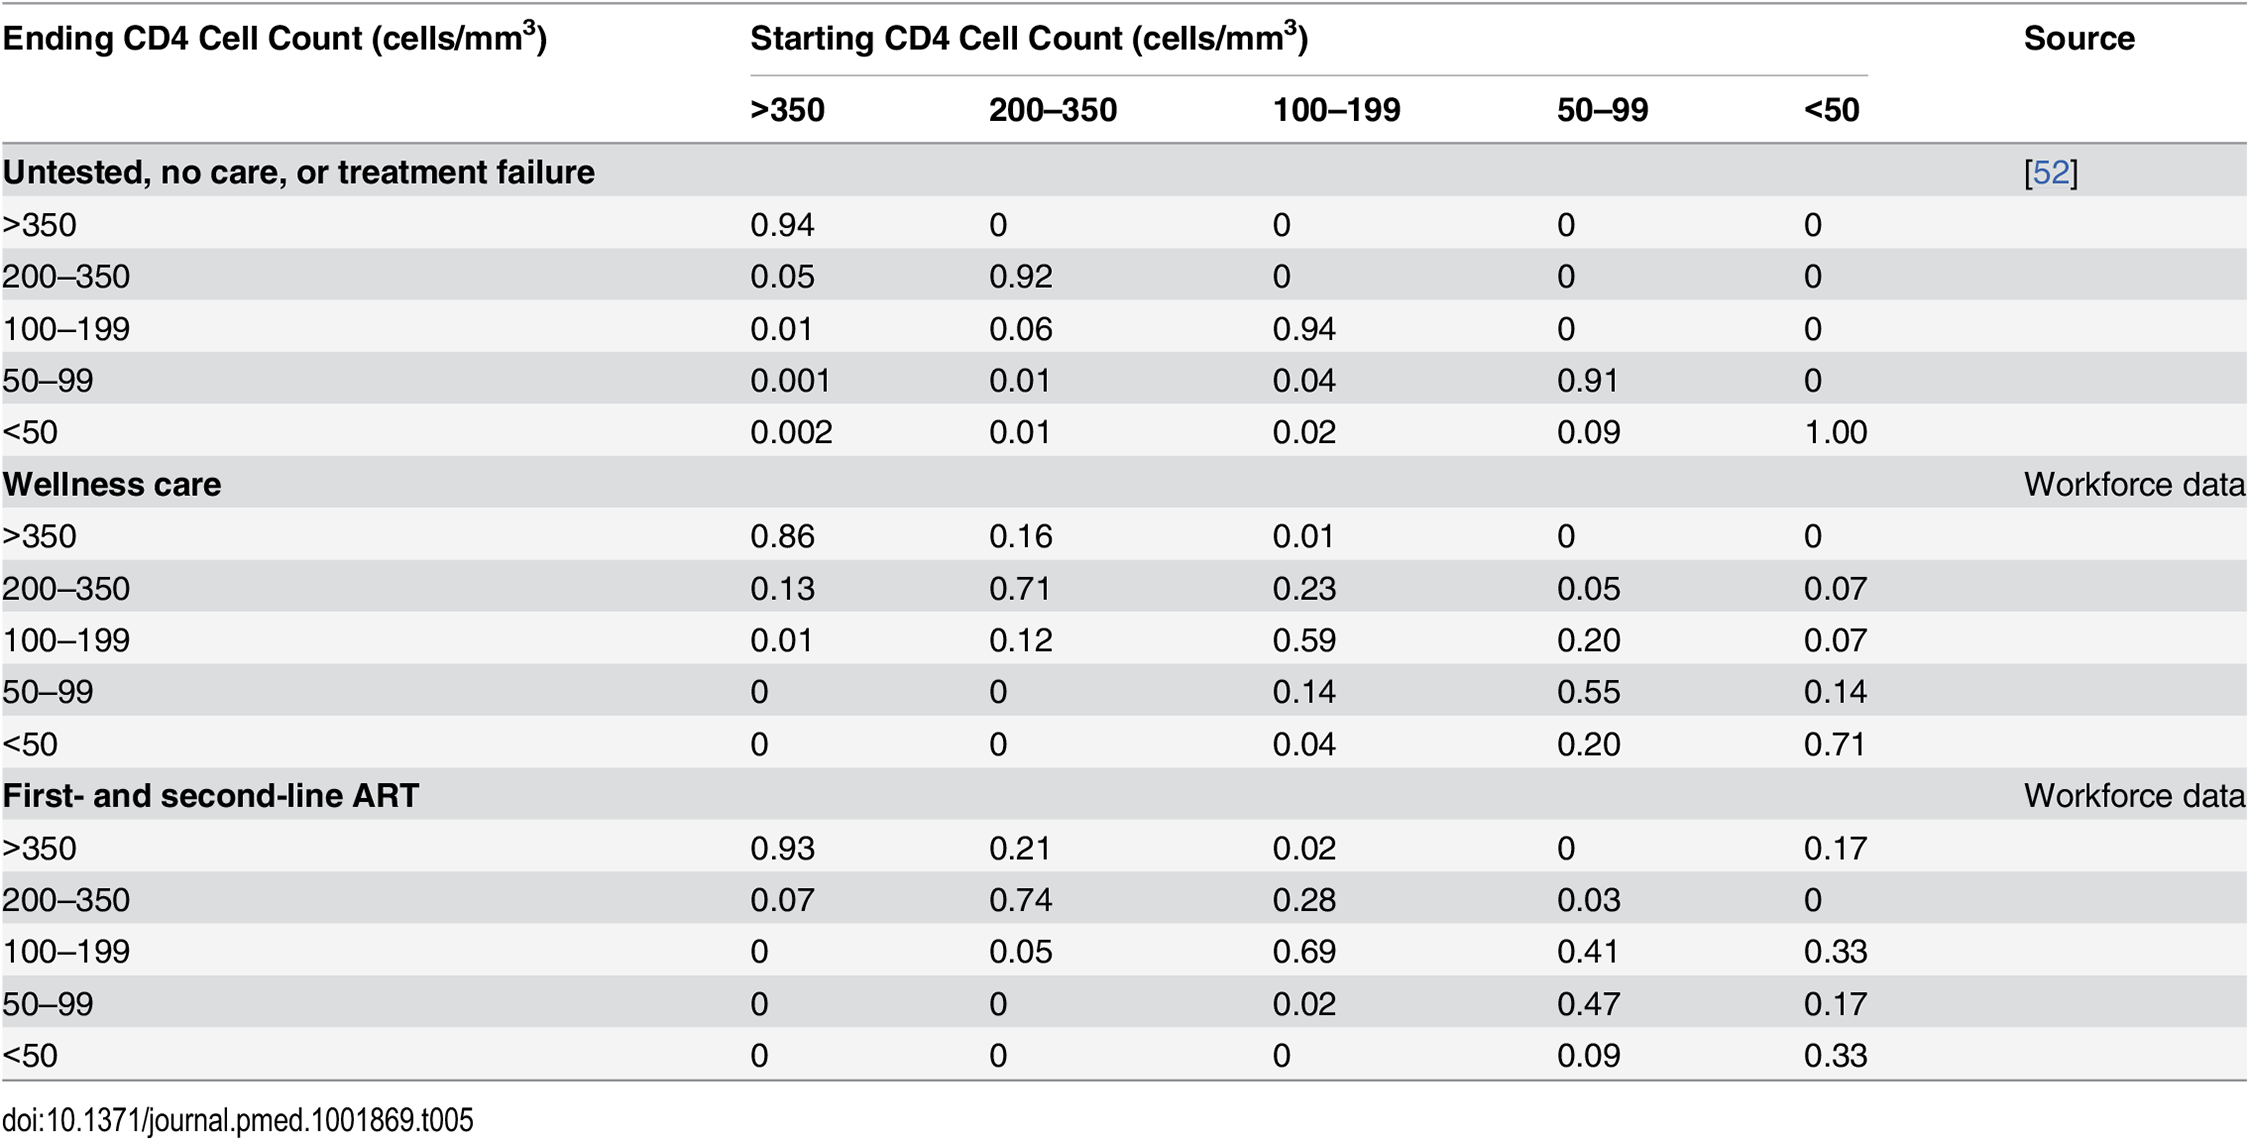 Model 3-mo transition probabilities between CD4-cell-count-defined health states by type of care.